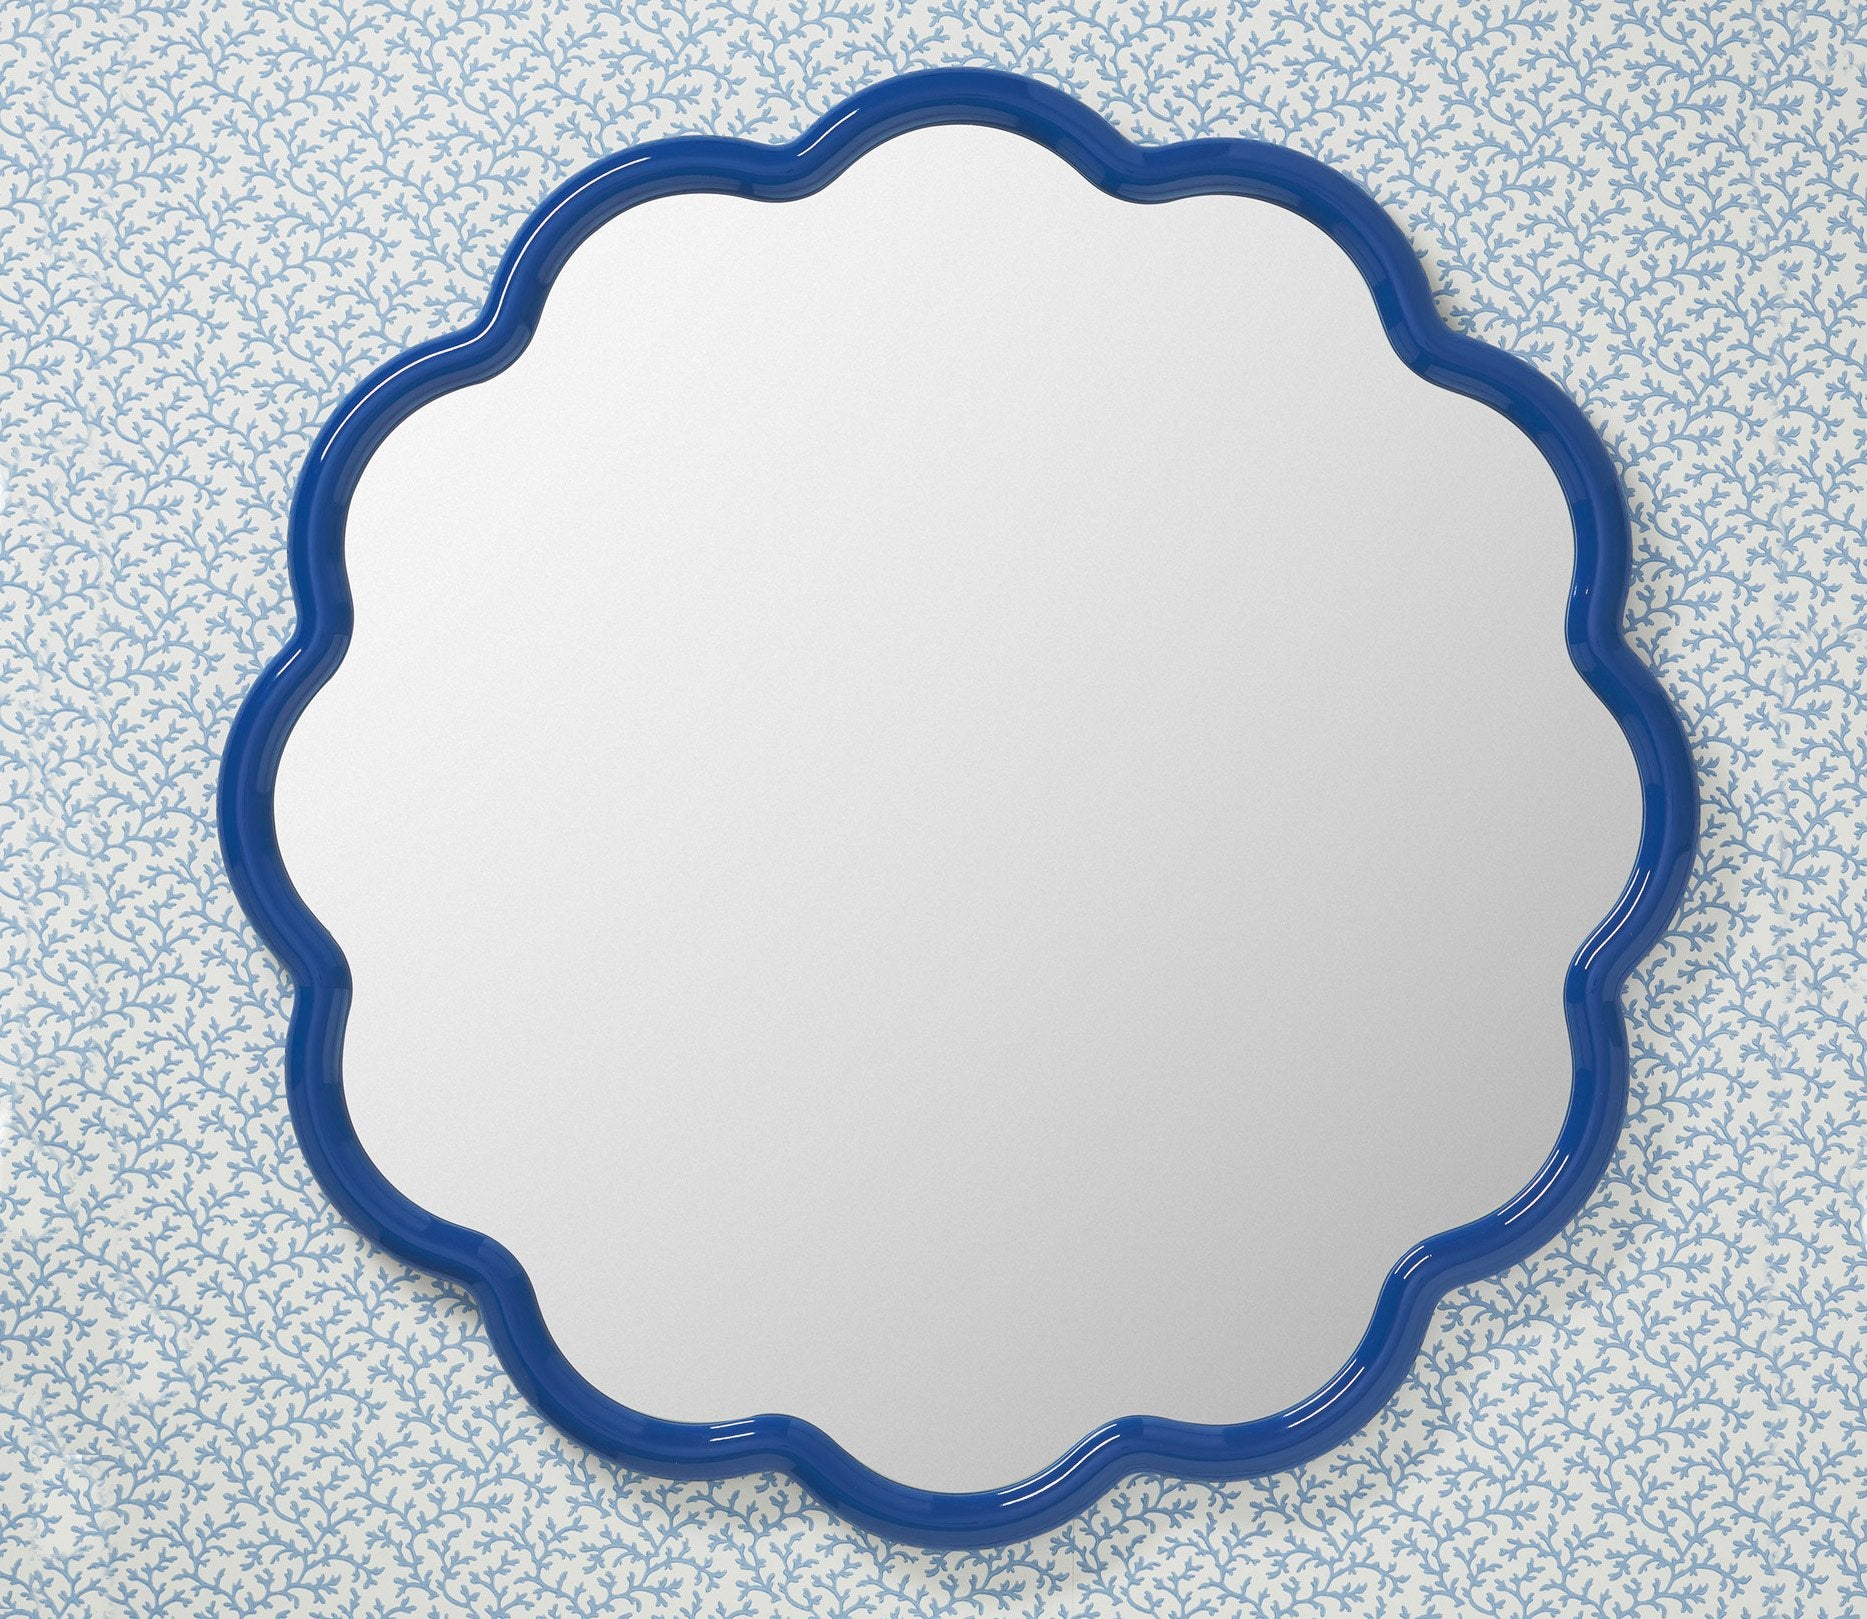 Flora Wall Mirror Large Product Image 7